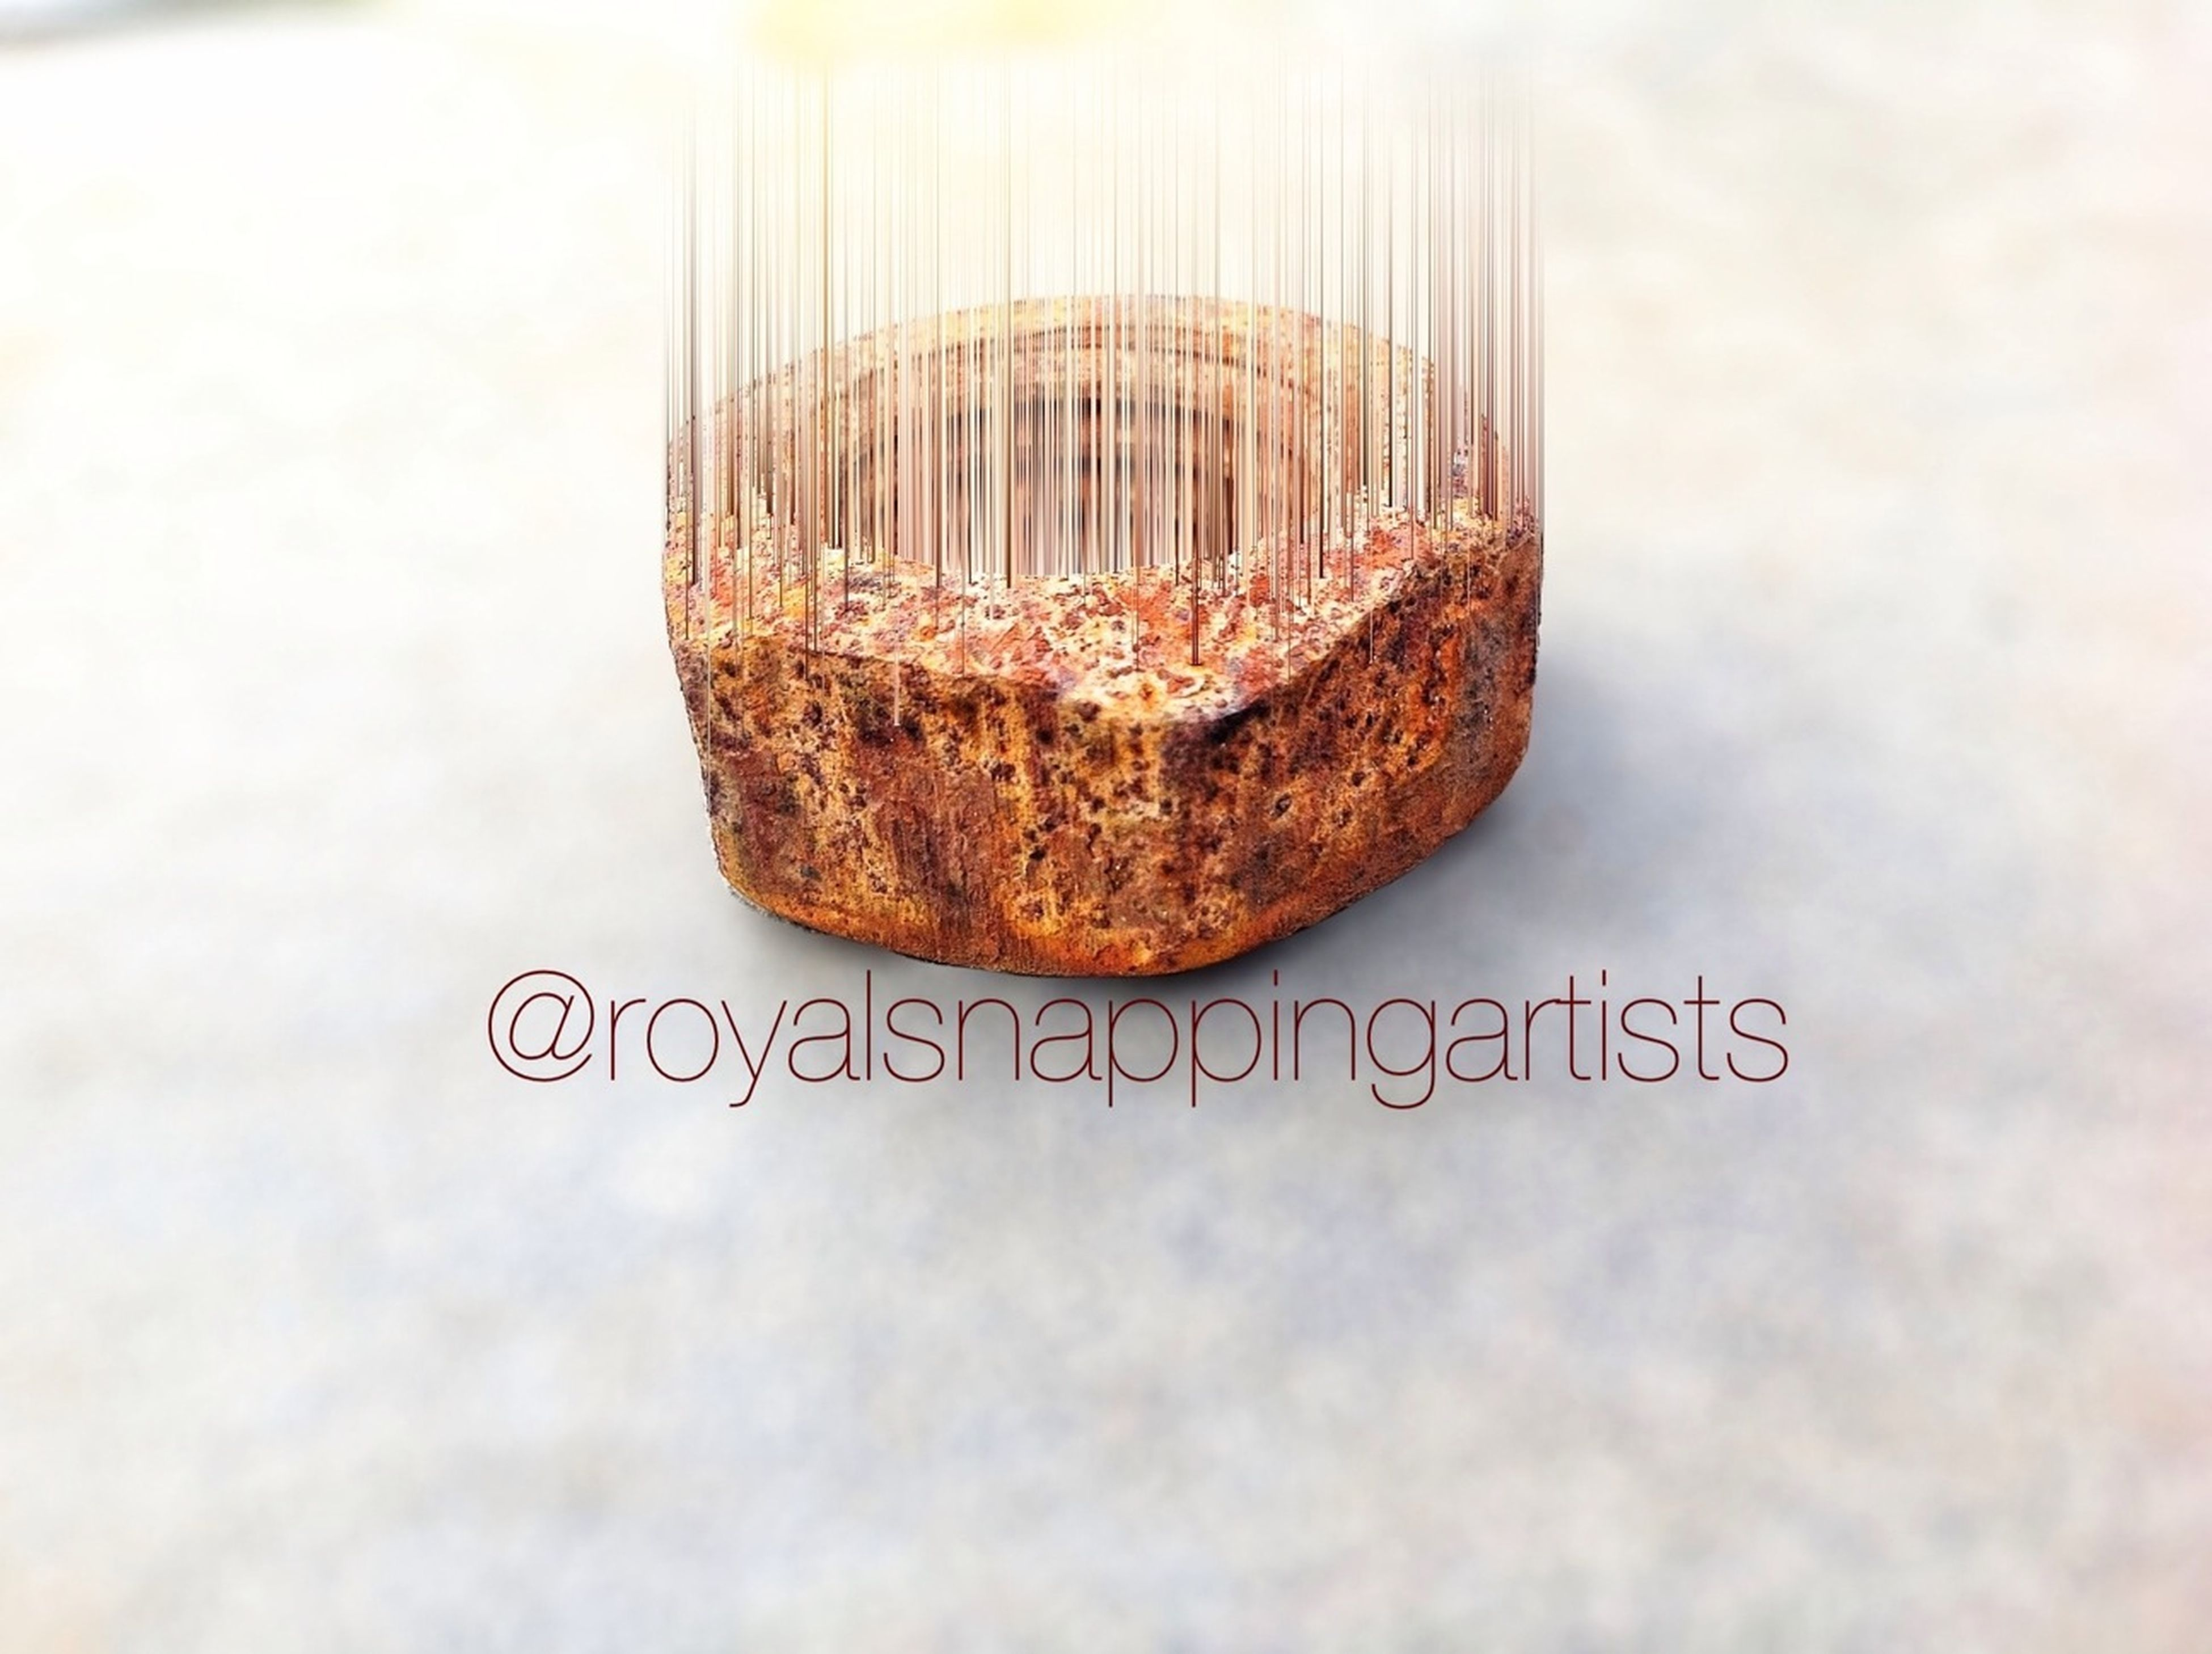 food and drink, food, close-up, text, freshness, still life, unhealthy eating, indoors, western script, sweet food, indulgence, ready-to-eat, communication, focus on foreground, selective focus, no people, dessert, day, plate, temptation